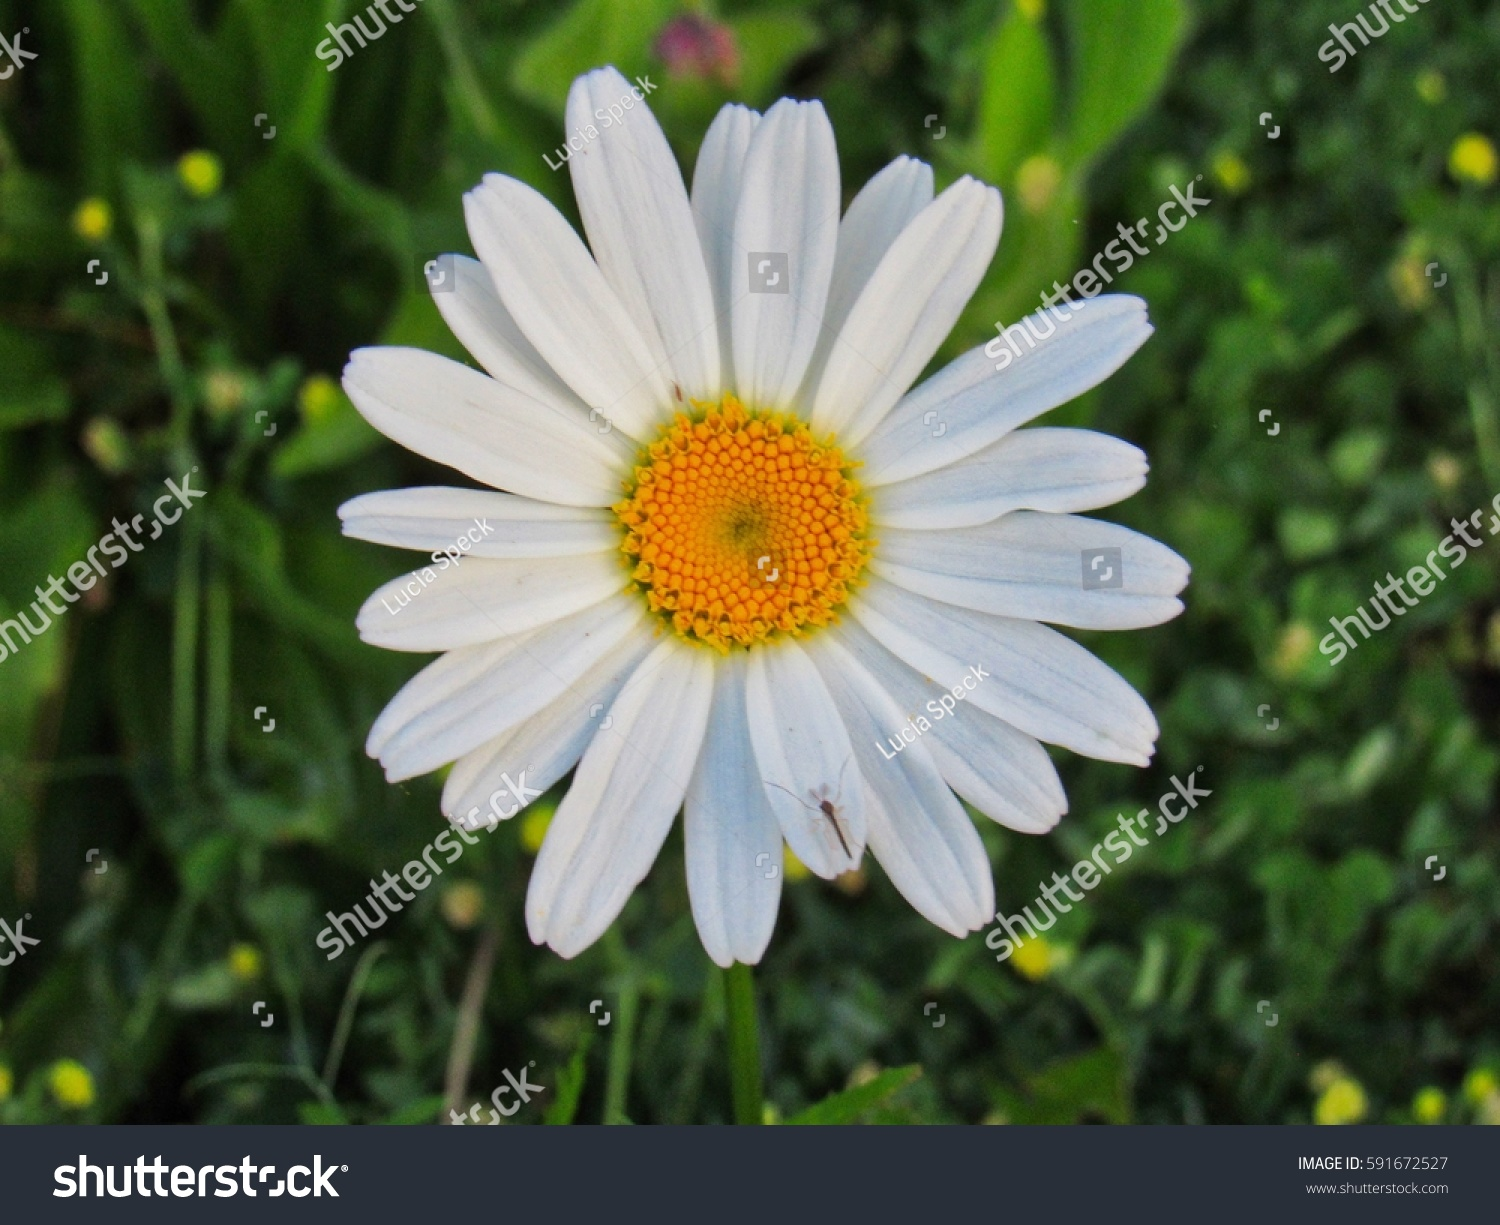 White Color Daisy Scientific Name Bellis Perennis In The Garden